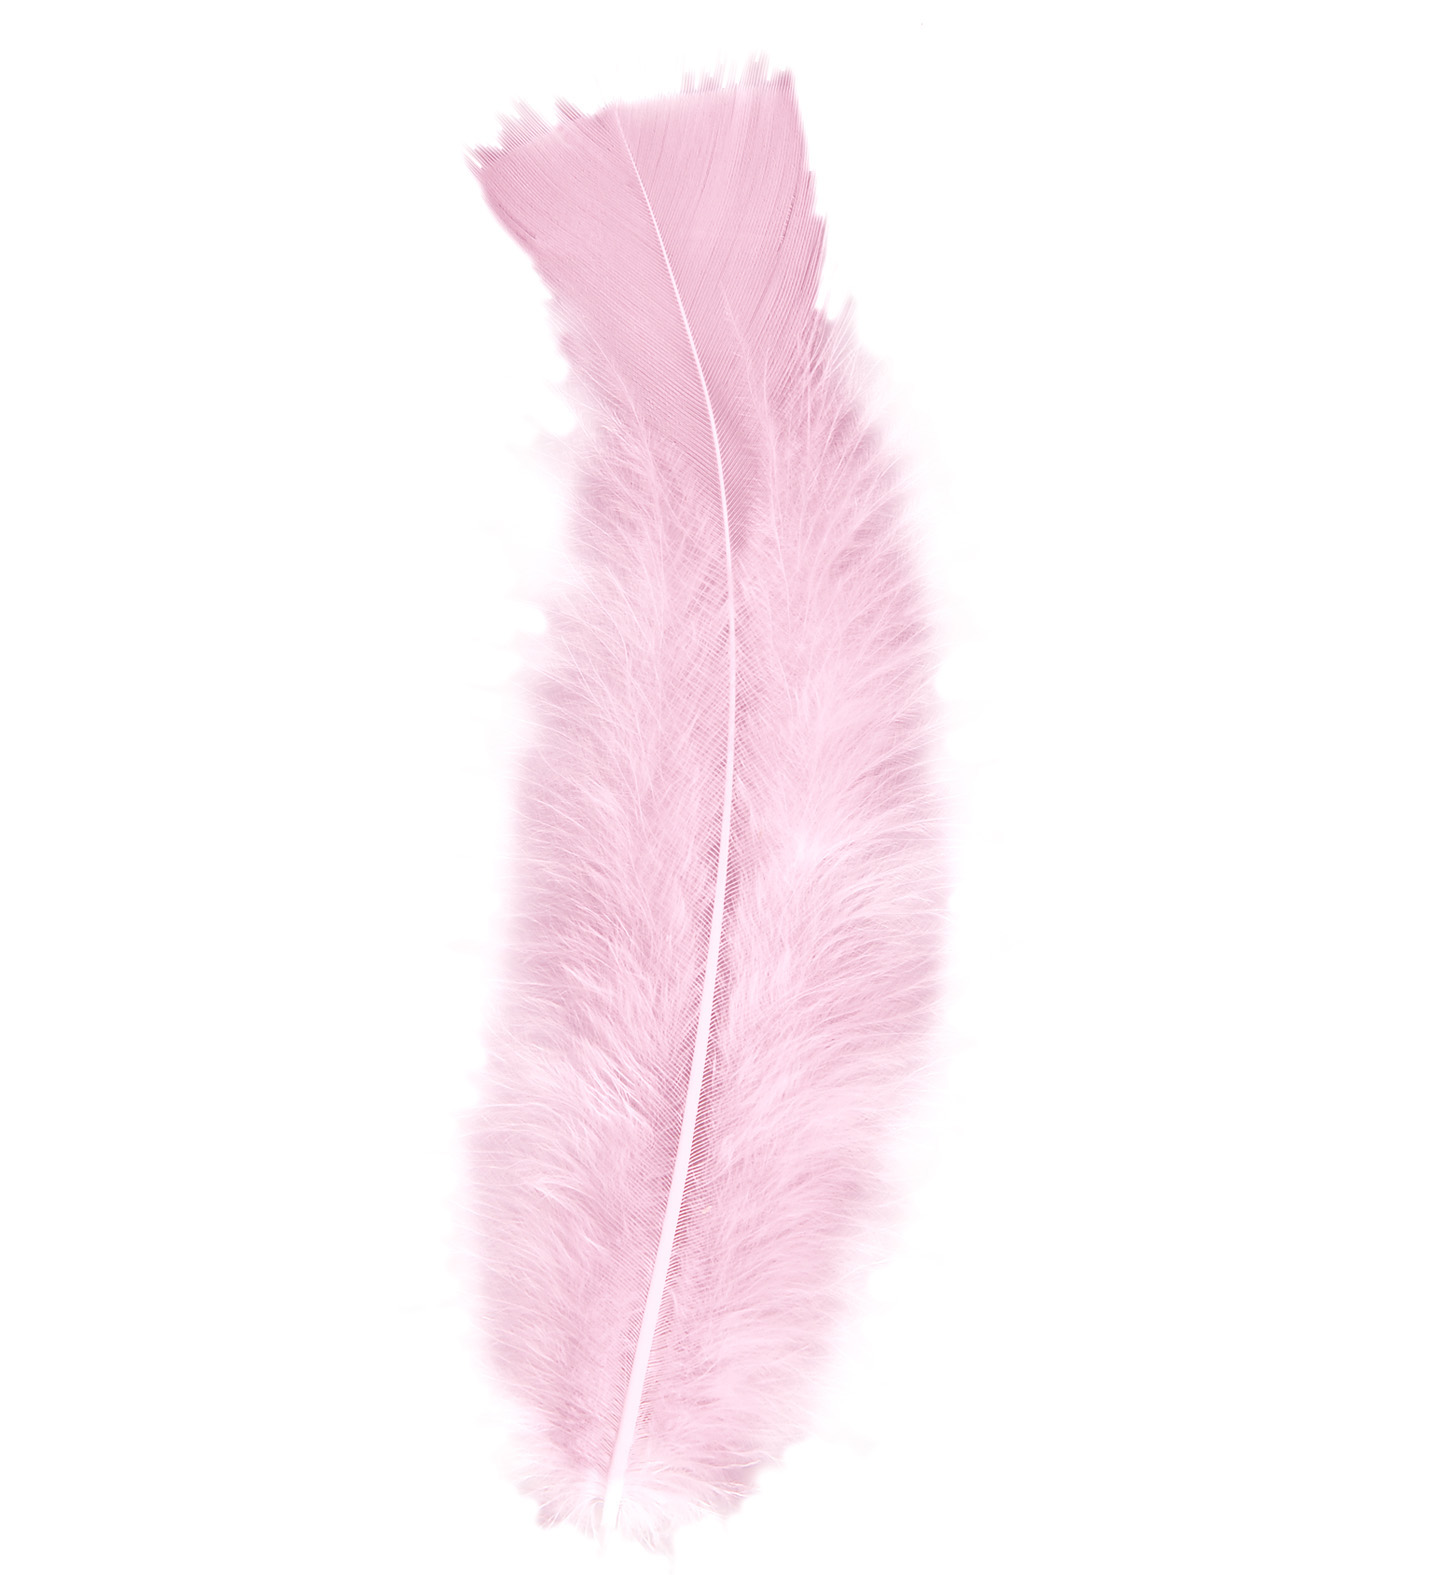 Bag Of Feathers Light Pink Hobby Craft